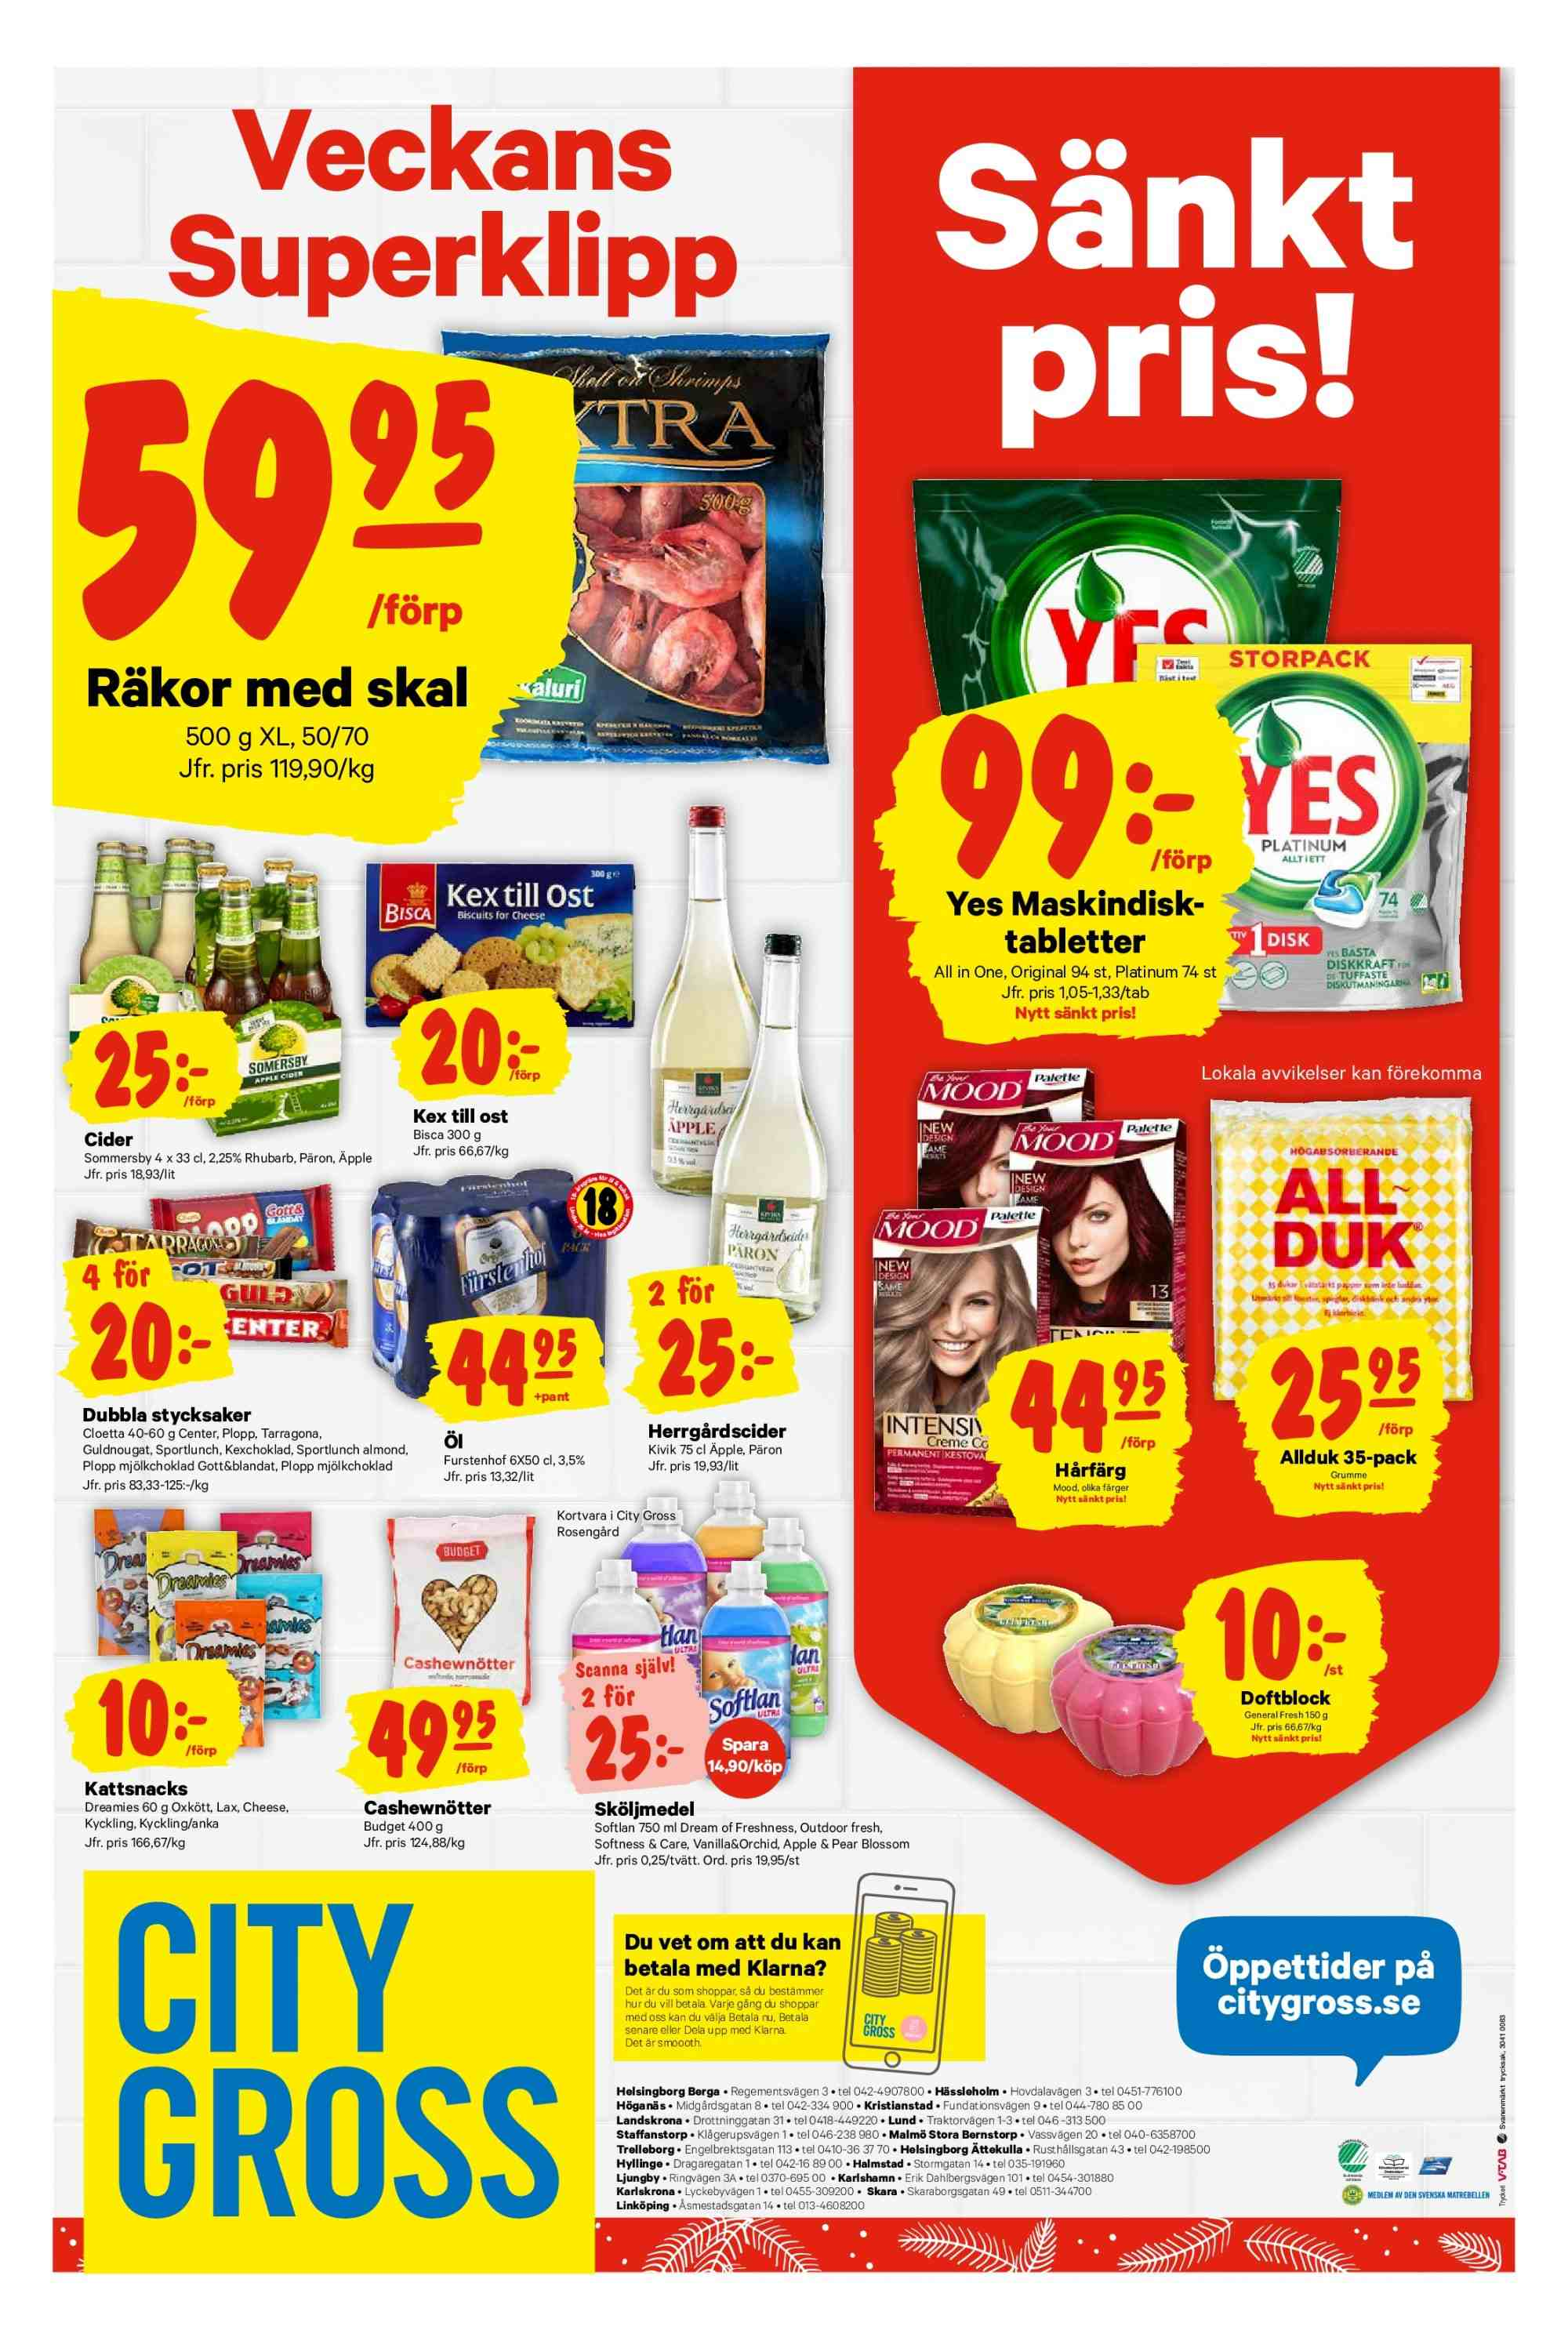 City Gross reklamblad - 17/12 2018 - 26/12 2018. Sida 22.